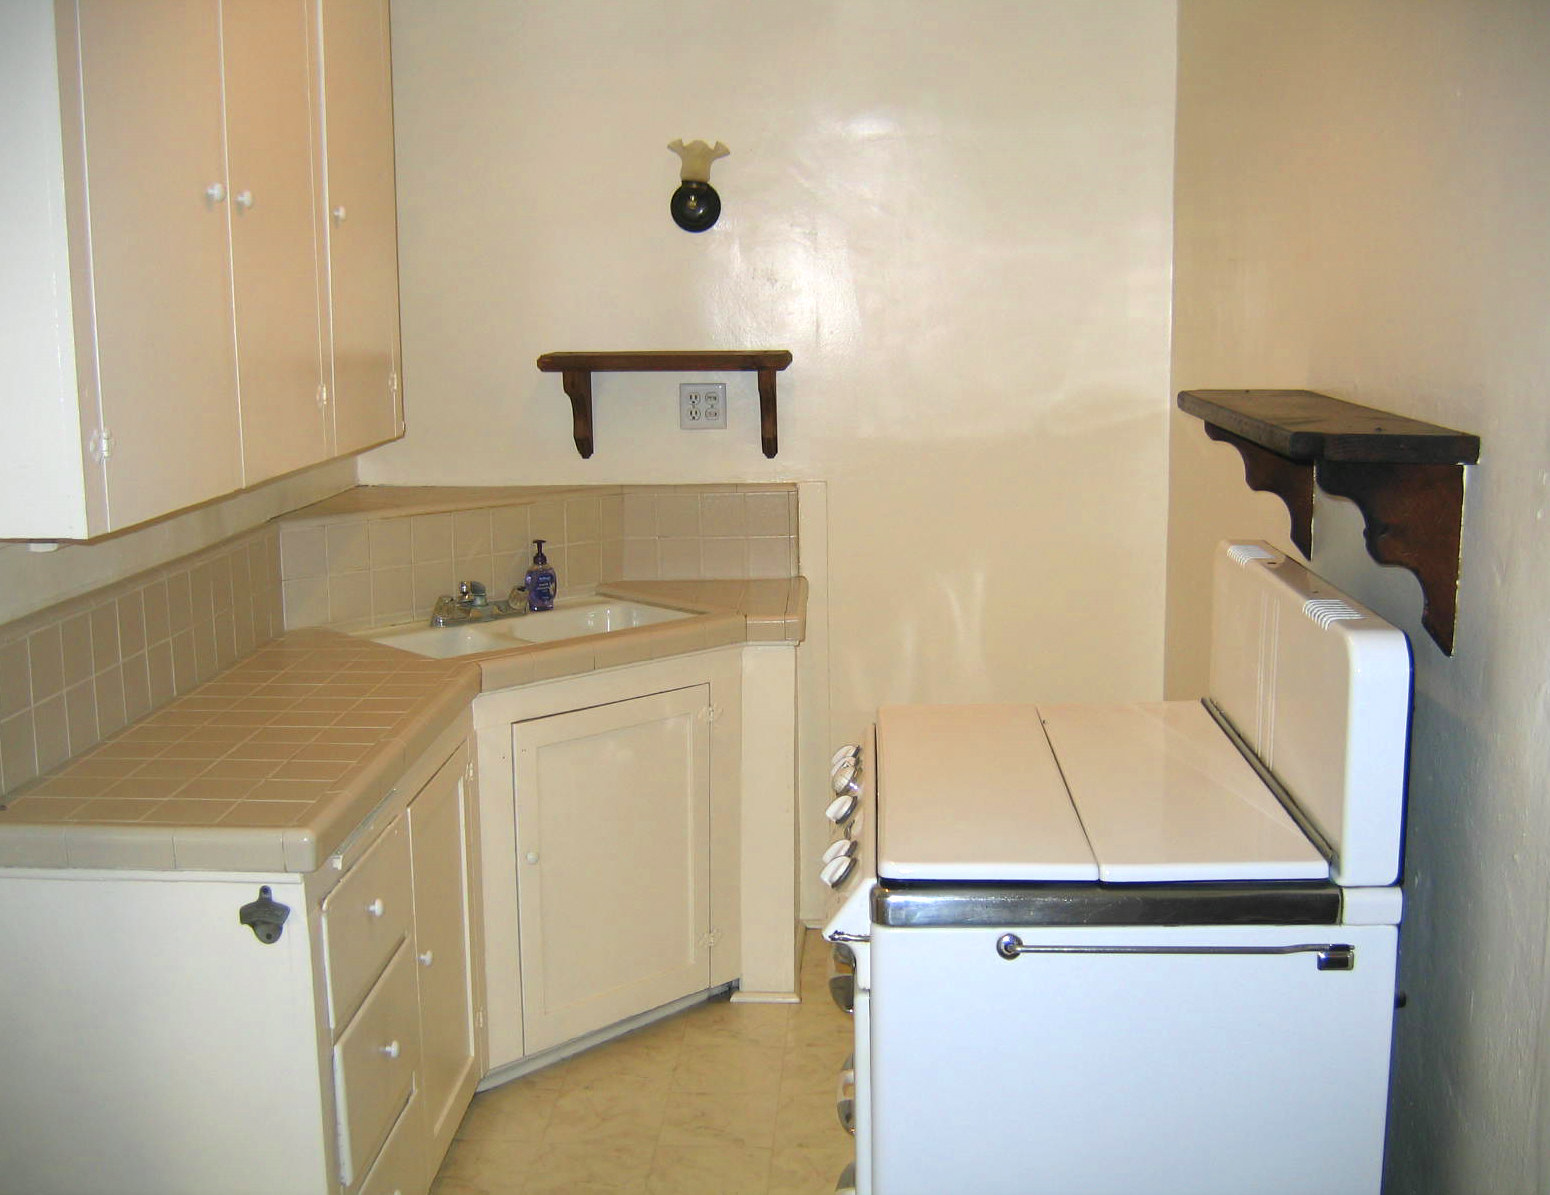 Burbank hillside triplex burbank ca real estate dan for Kitchen 713 reservations